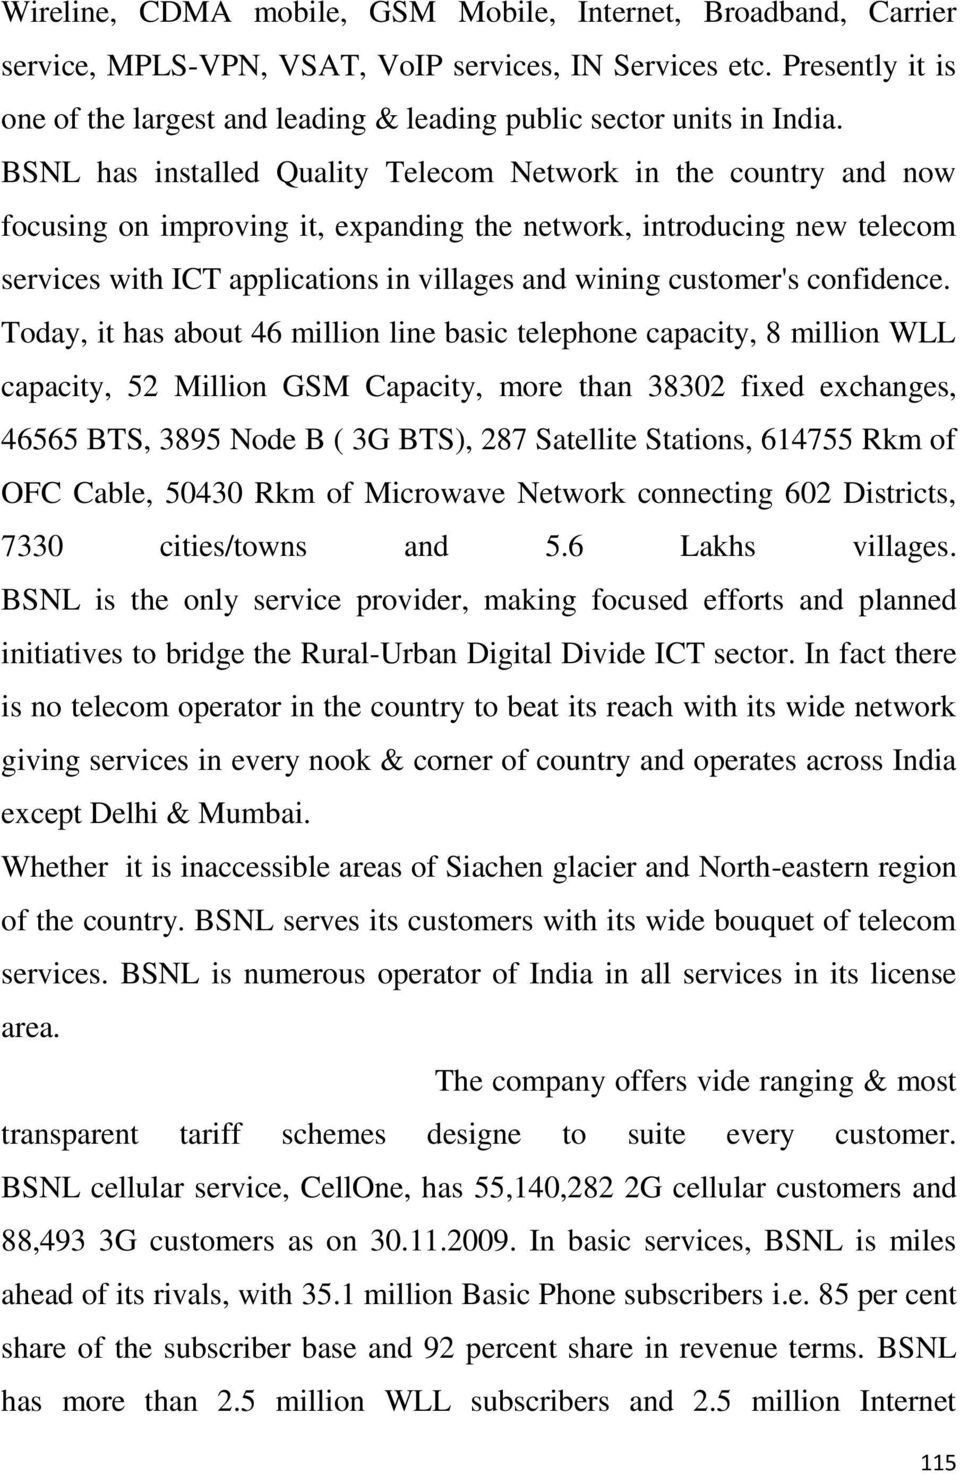 BSNL has installed Quality Telecom Network in the country and now focusing on improving it, expanding the network, introducing new telecom services with ICT applications in villages and wining